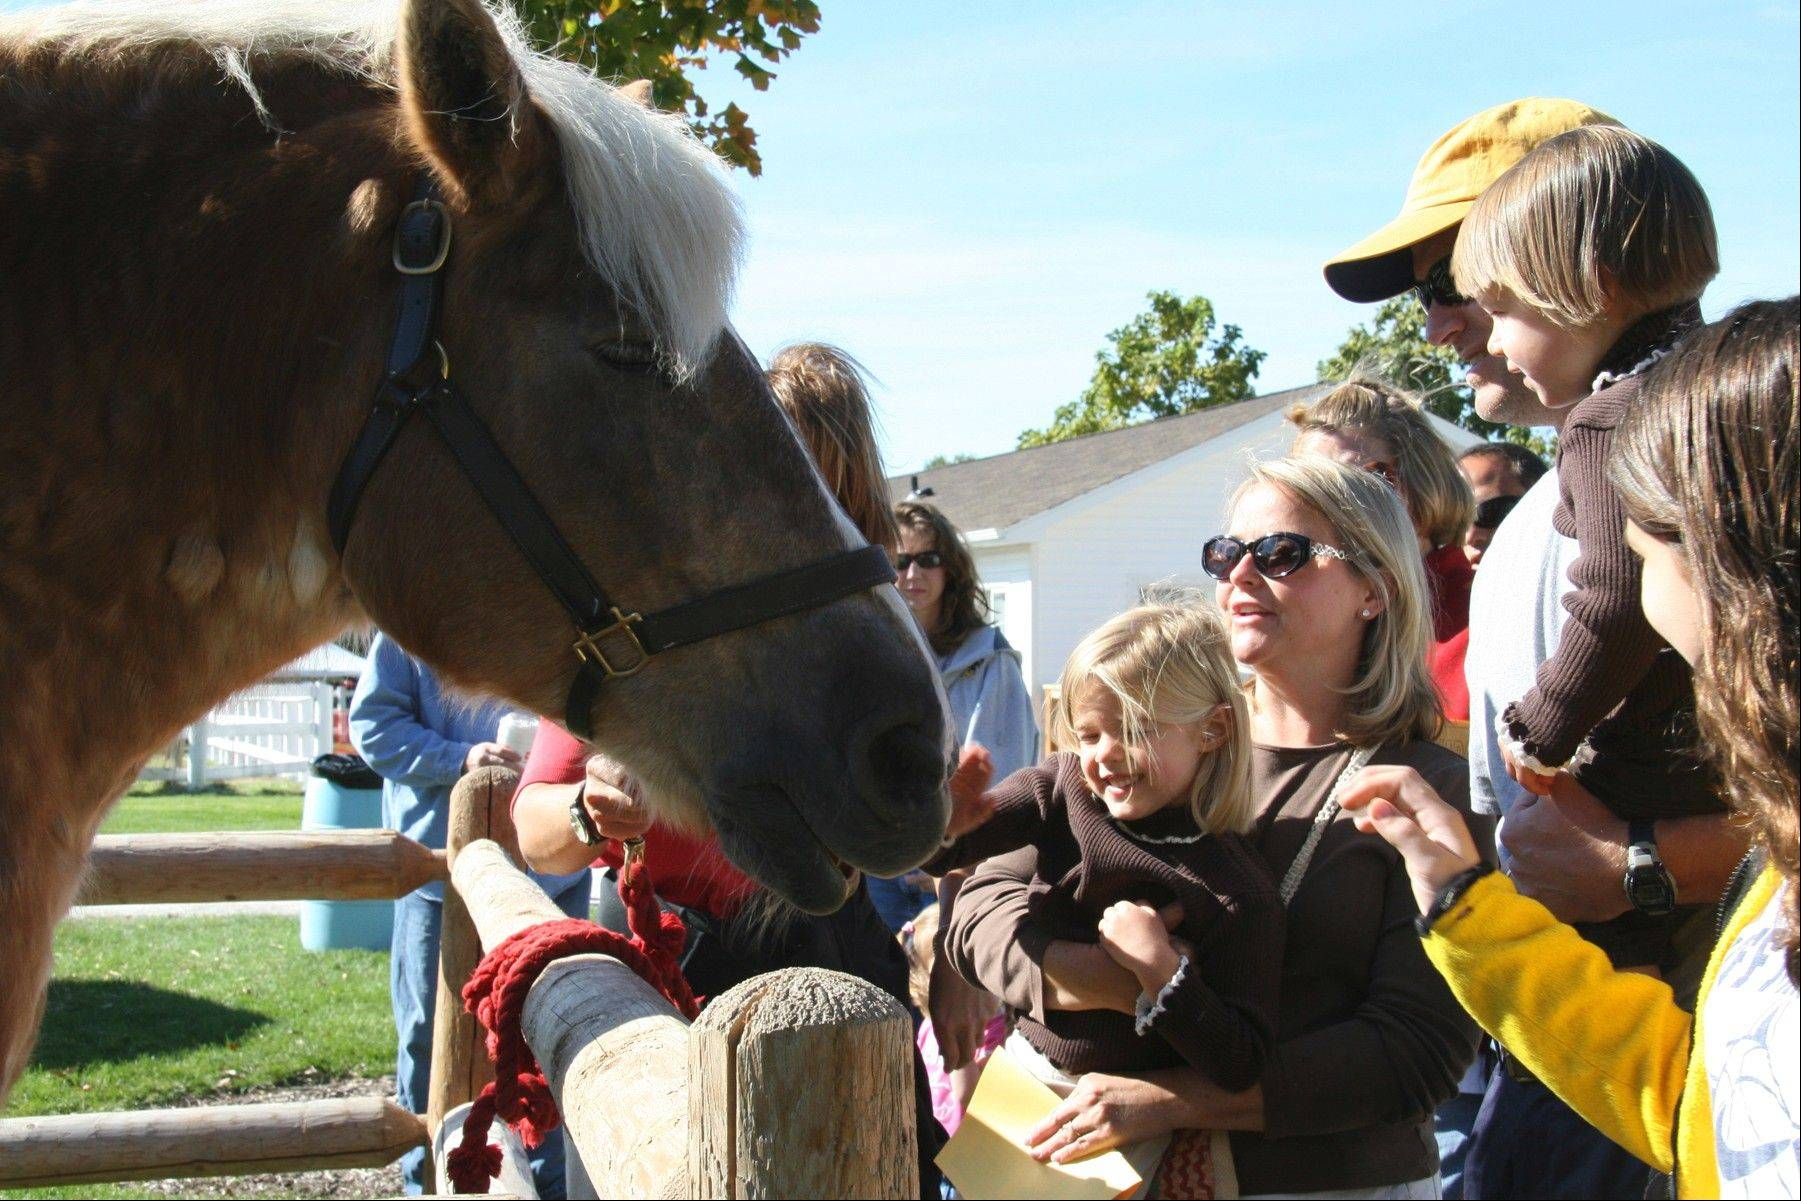 The Danada Fall Festival features resident and guest horses, and annually draws a crowd of more than 12,000.